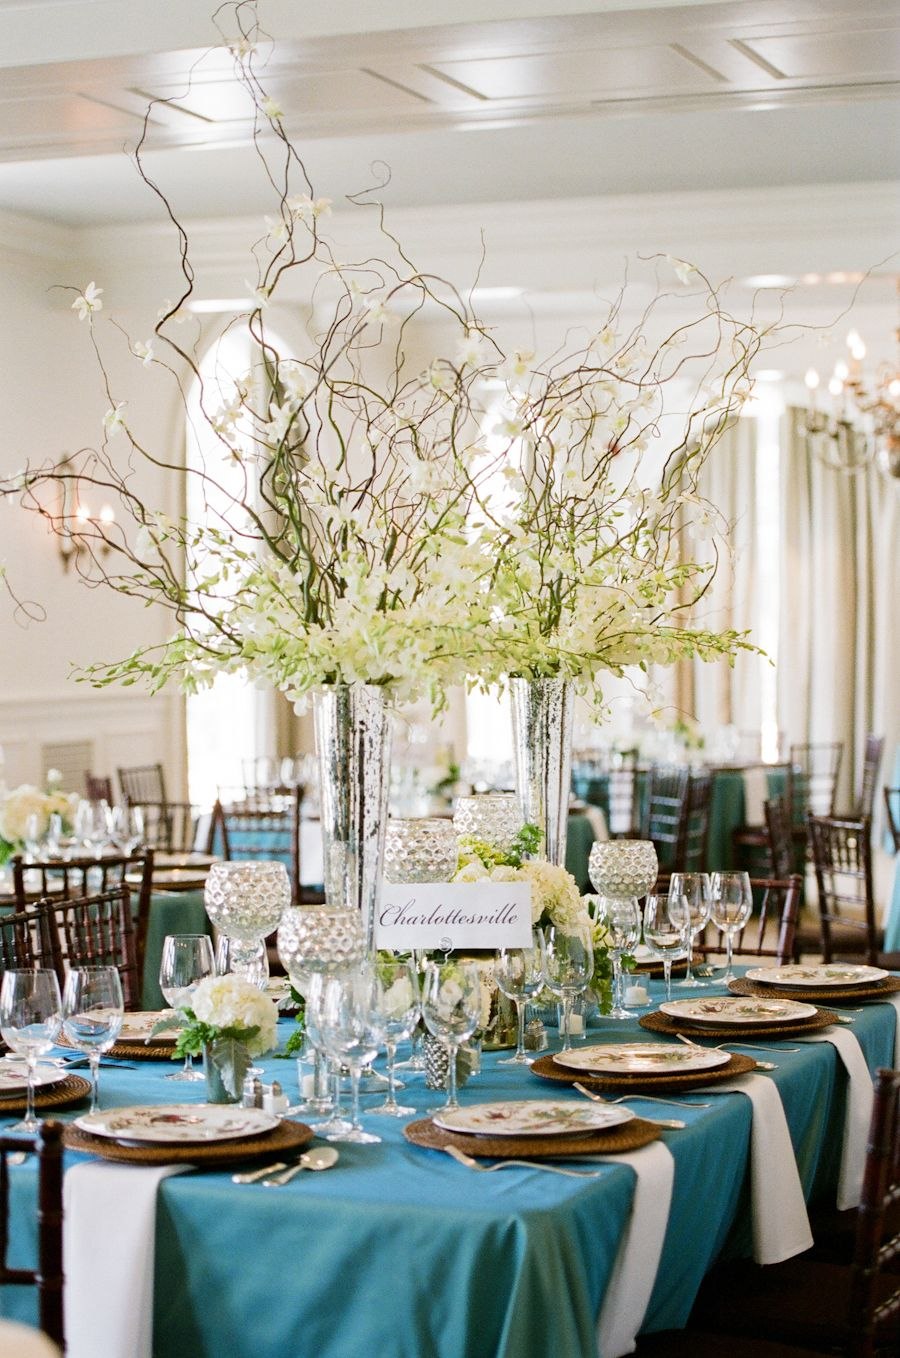 centerpieces at previous wedding at Keswick - what about navy linens ...